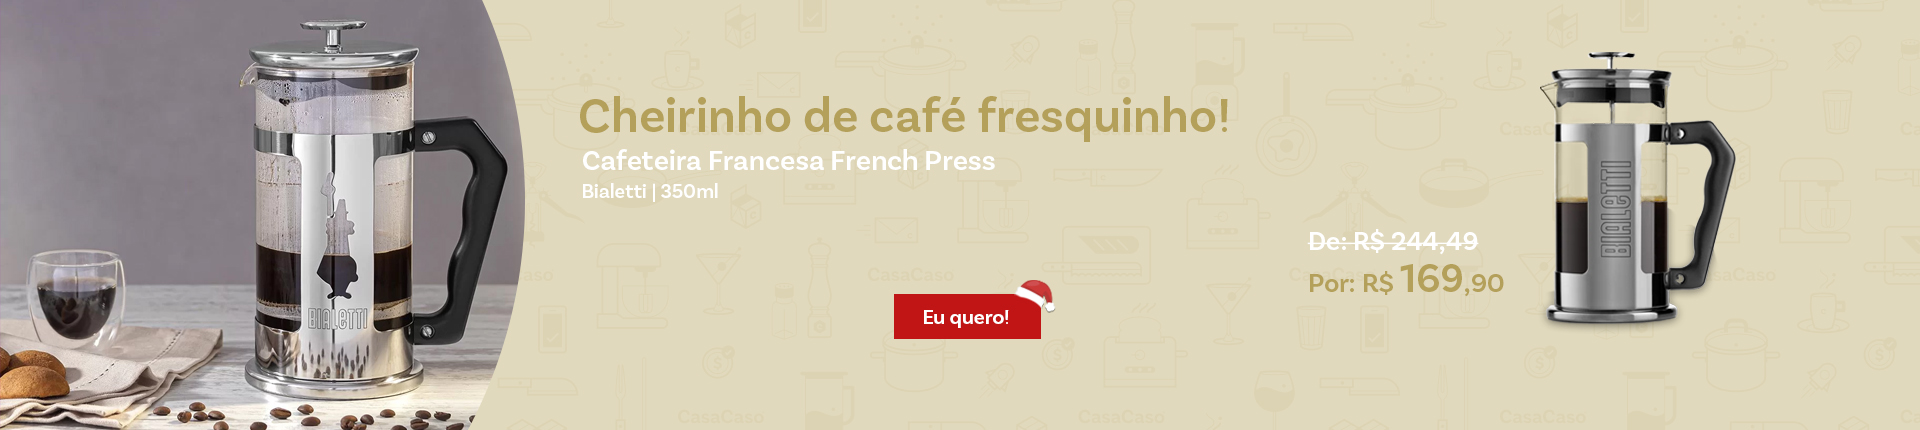 Cafeteira Francesa French Press Bialetti 350ml